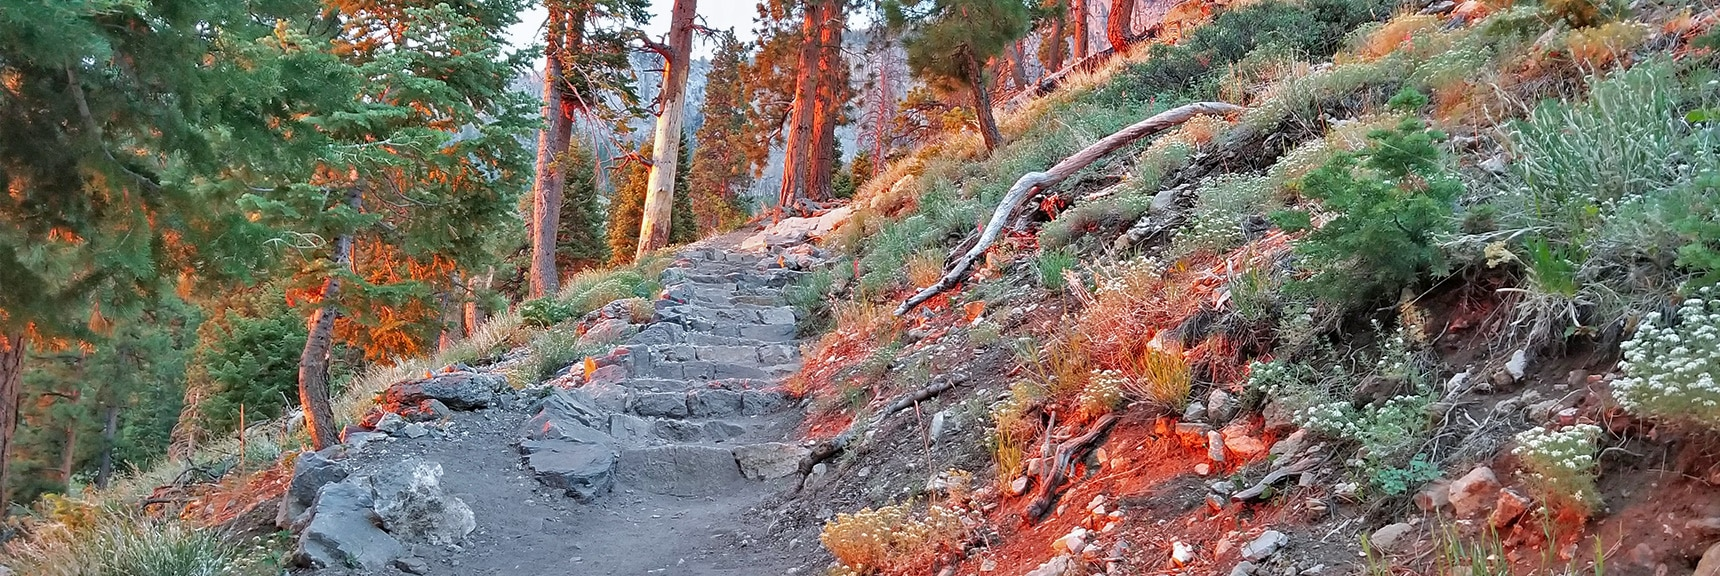 Starting Out on the South Loop Trail from Cathedral Rock at Sunrise | Sexton Ridge Descent from Griffith Peak, Mt. Charleston Wilderness, Spring Mountains, Nevada